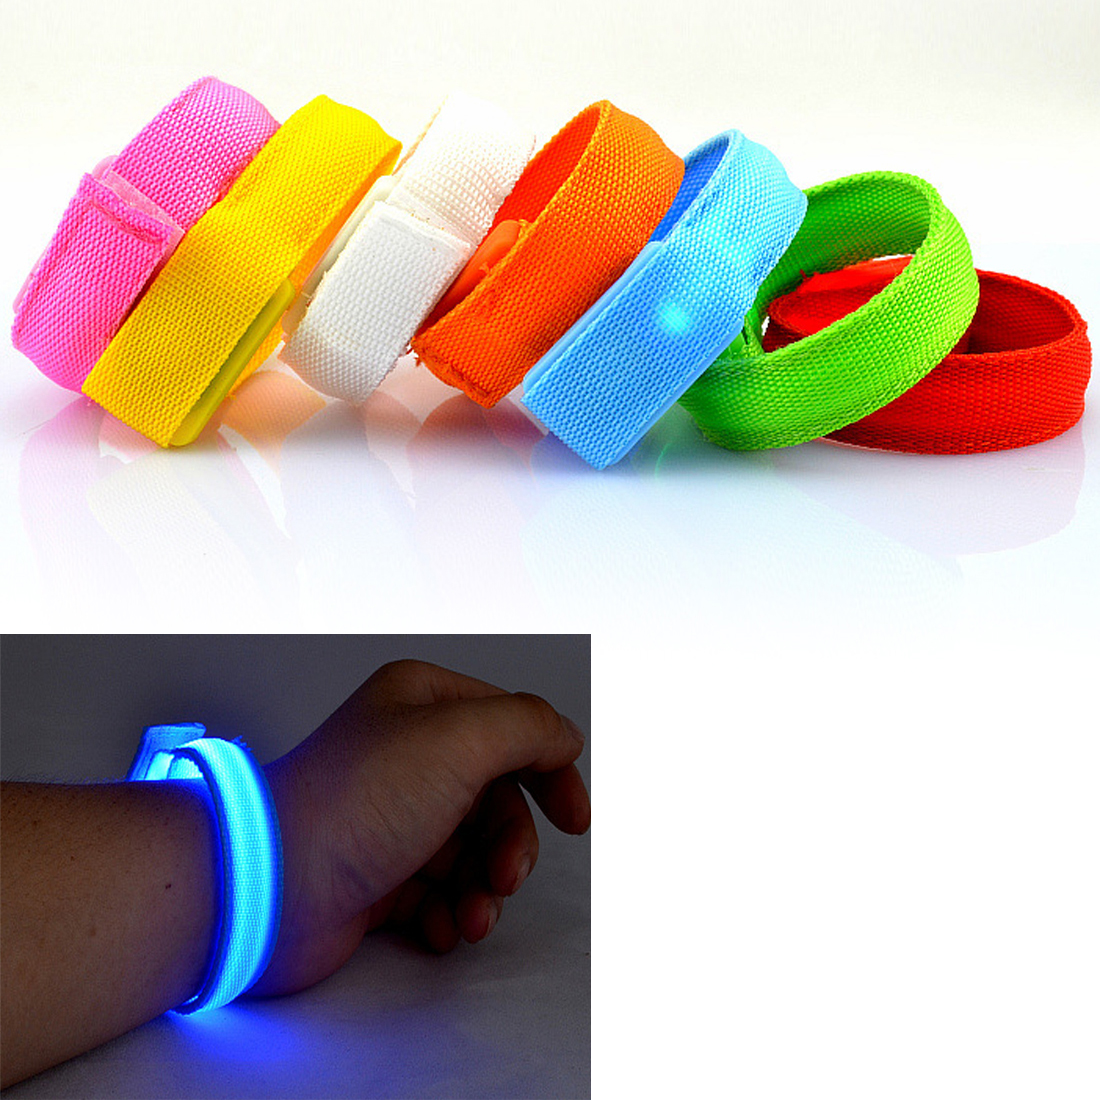 Hot Sale Led Flashing Wrist Band Bracelet Light Up Glow Outdoor In The Dark Dance Party Sports Multi Colors Fun